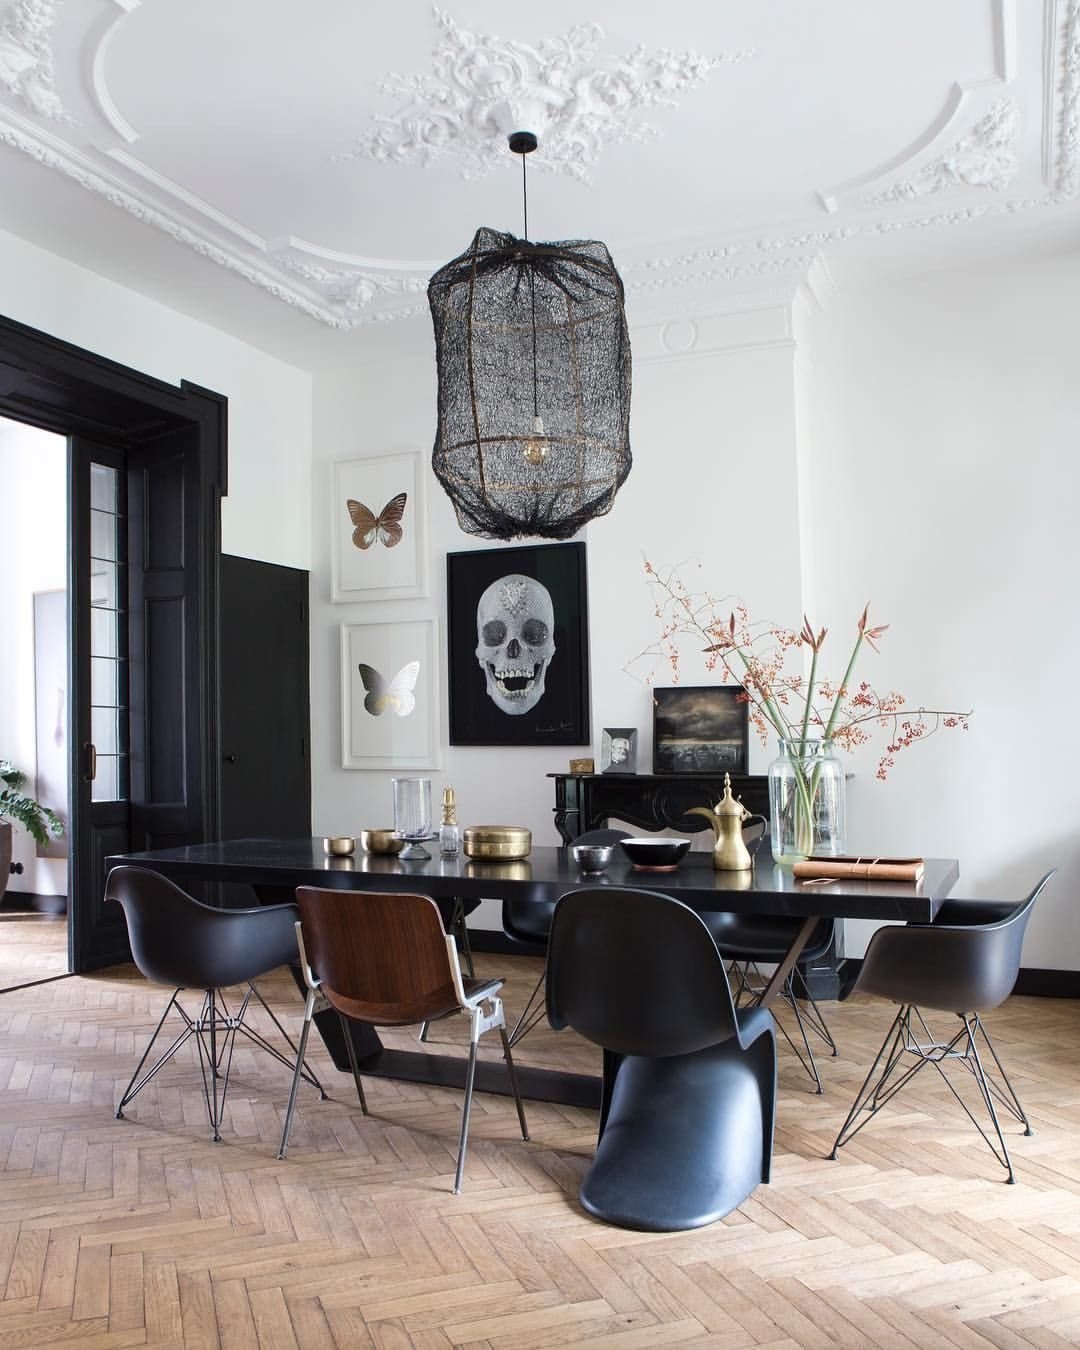 Top Amazing Modern Gothic Interior Design Ideas and Decor